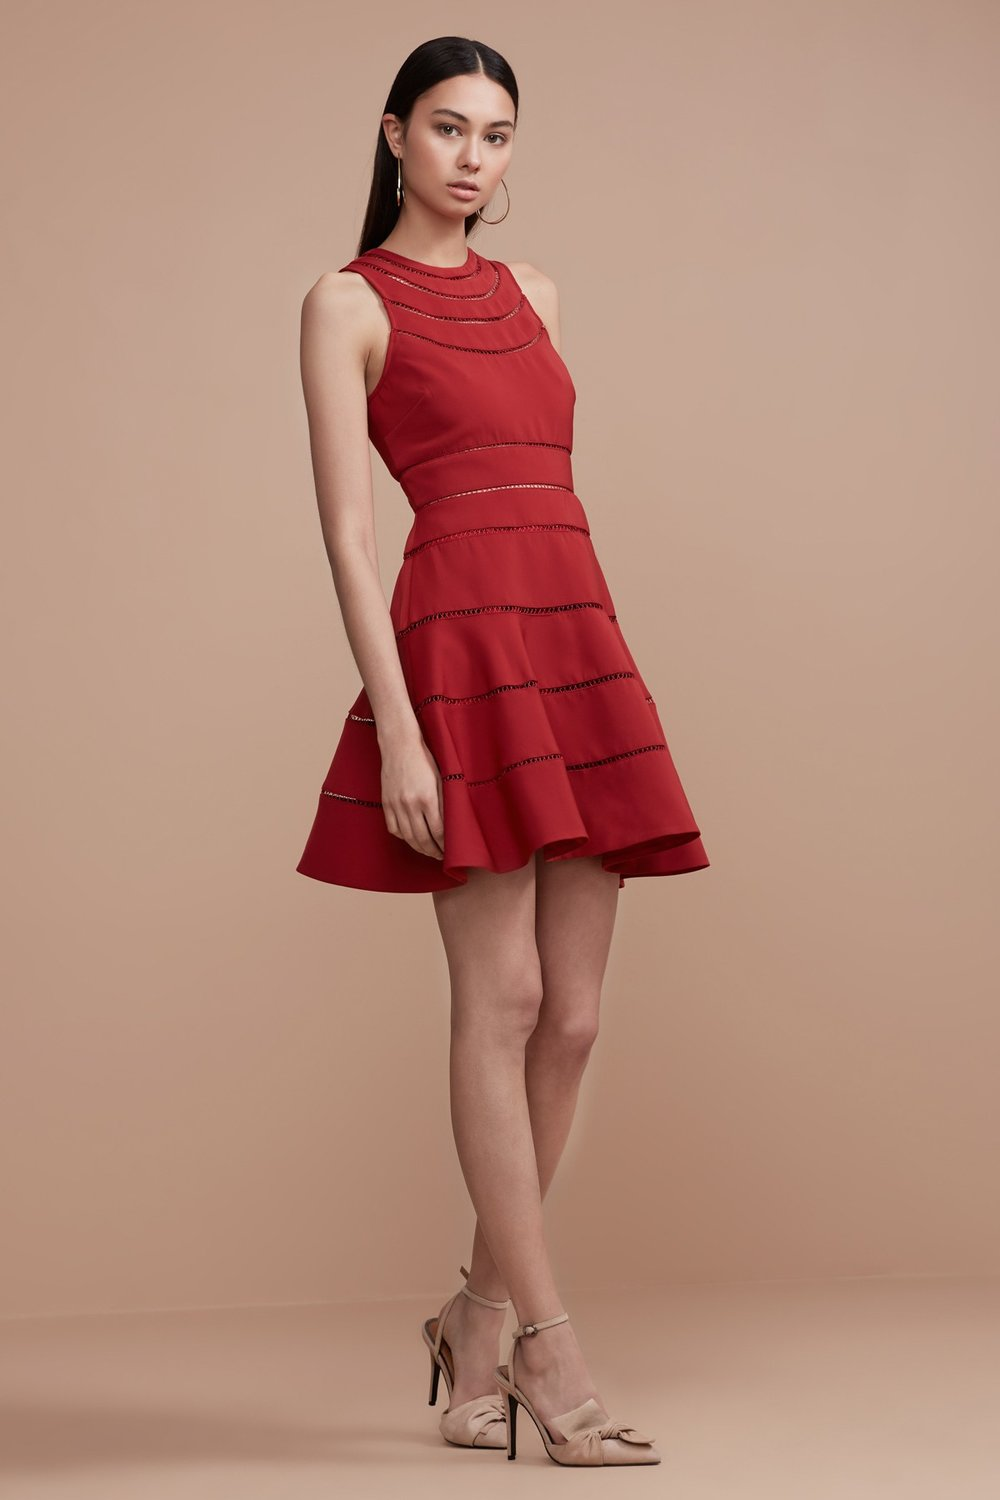 Shop Keepsake Heart Beat Short Sleeve Dress.